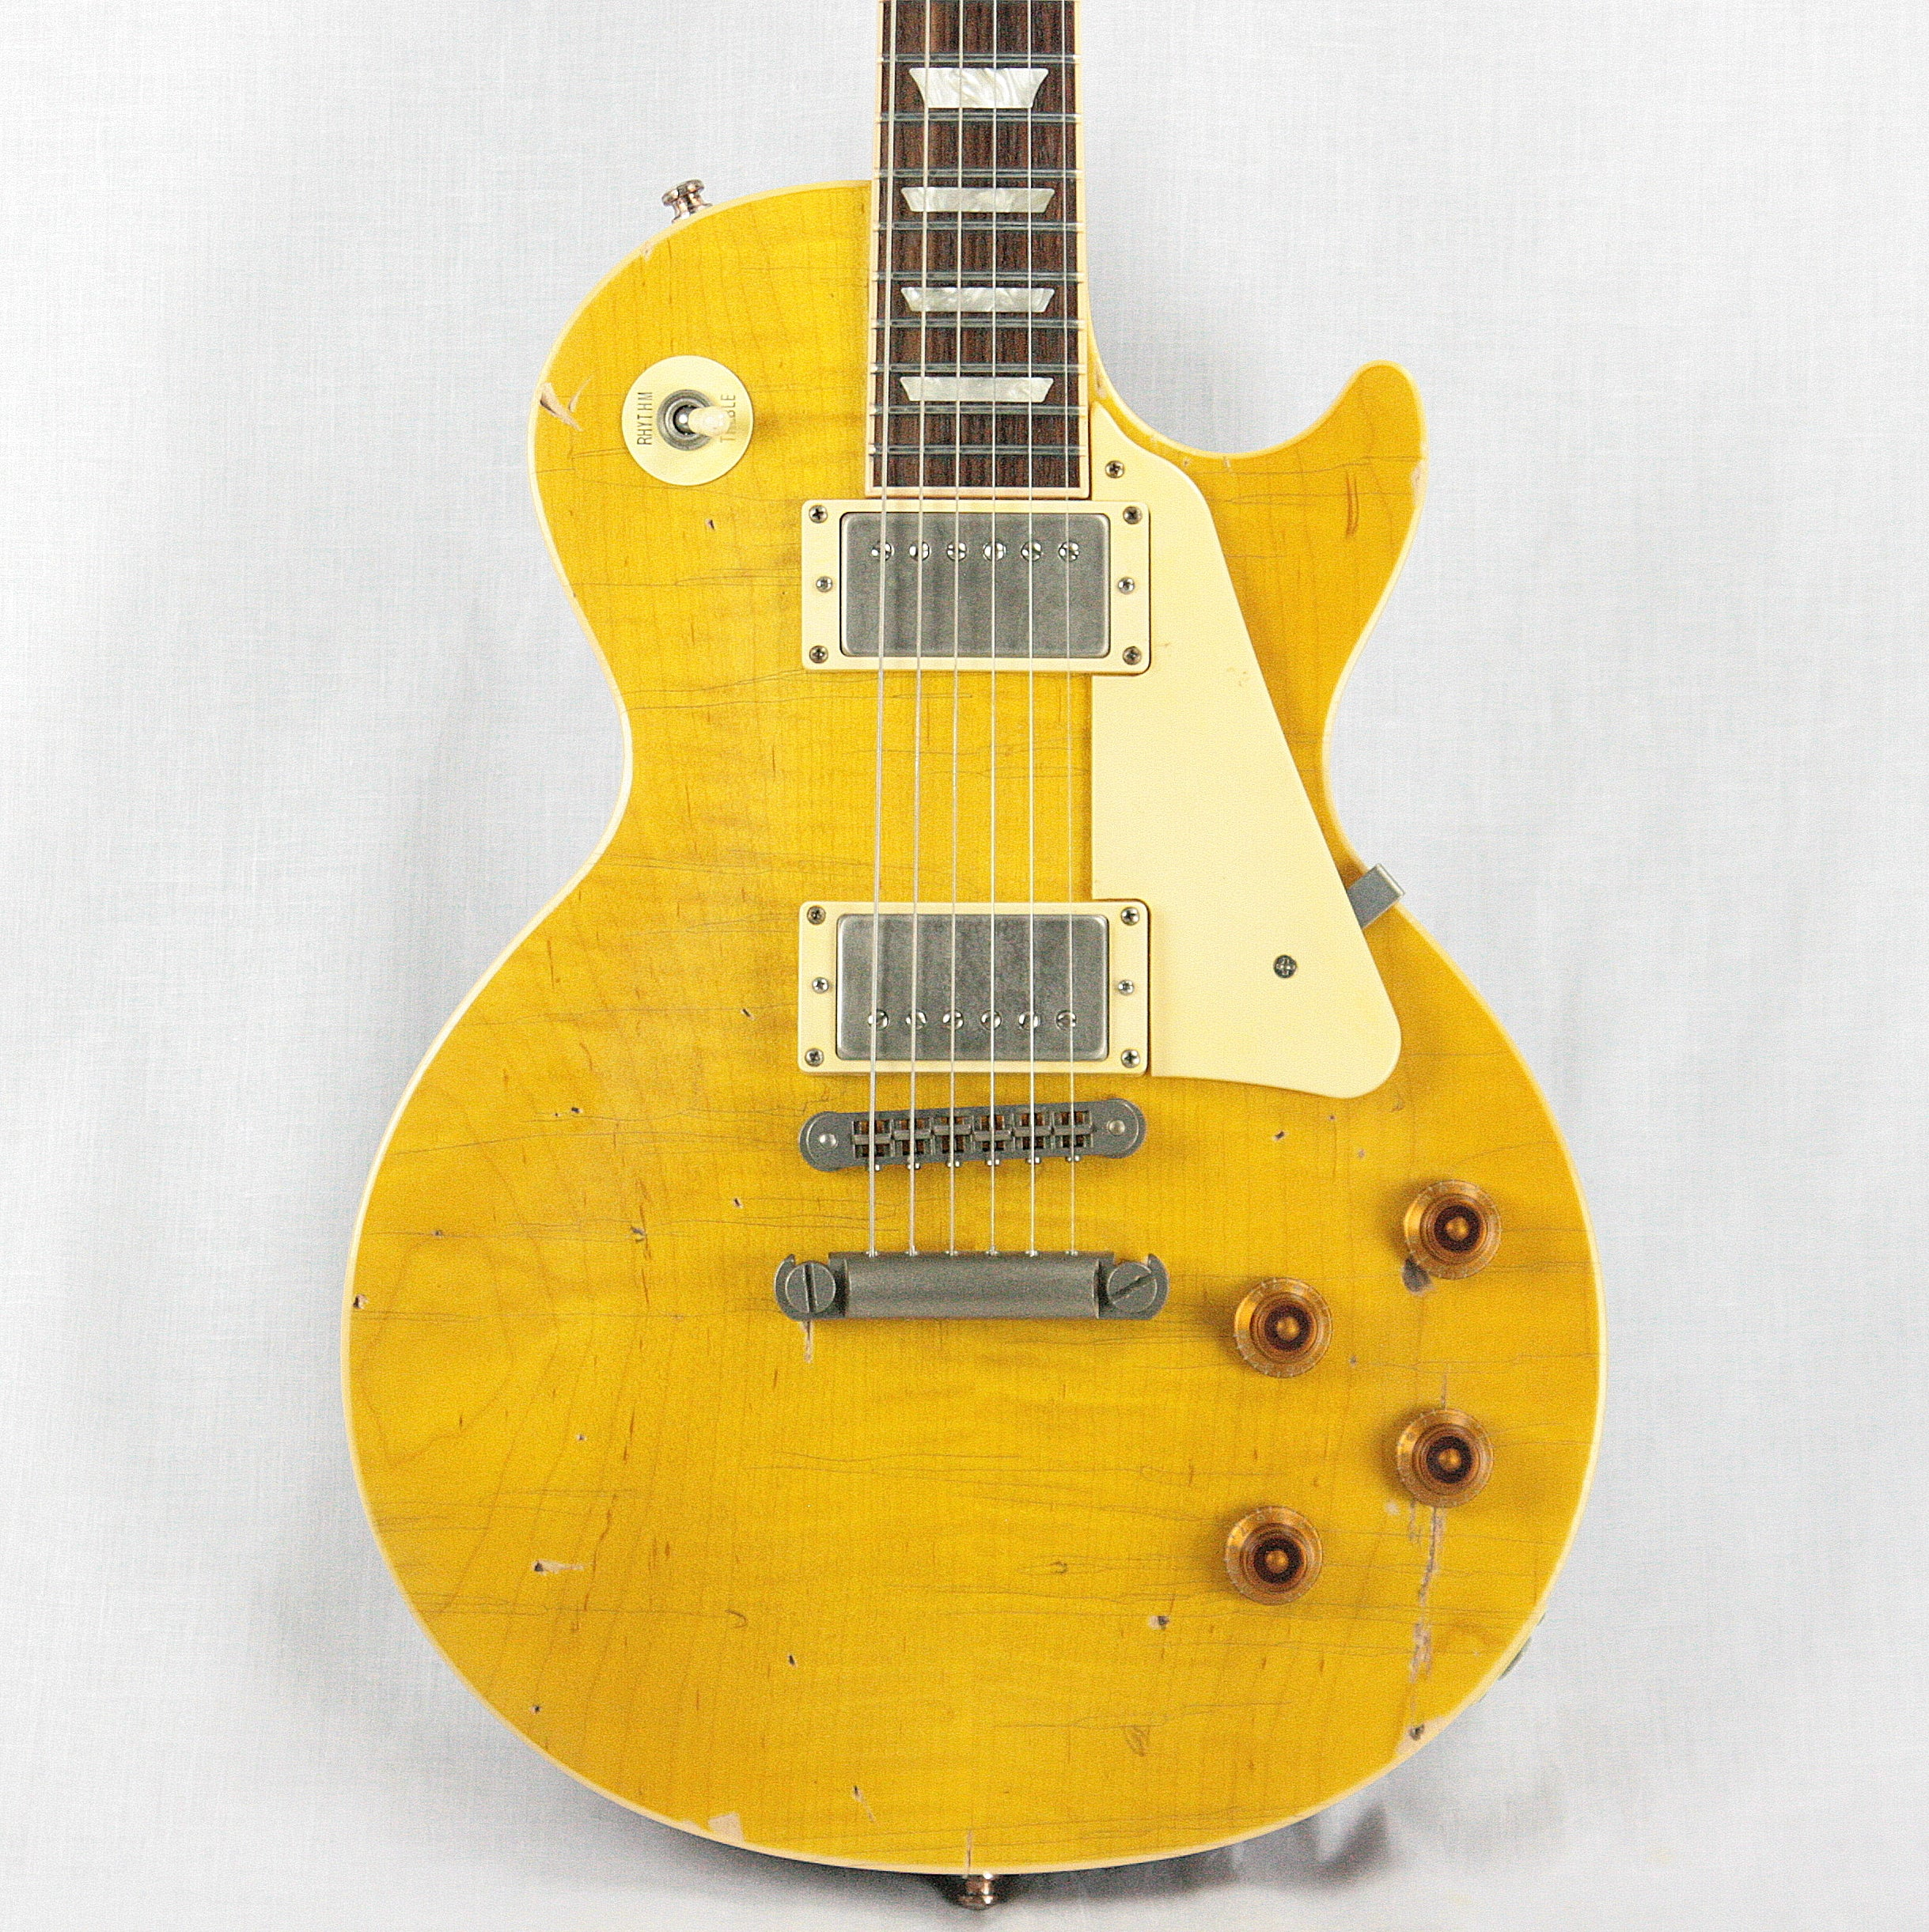 2018 Gibson NASH LP-60 Les Paul Standard Conversion Aged Lemon Burst! Traditional